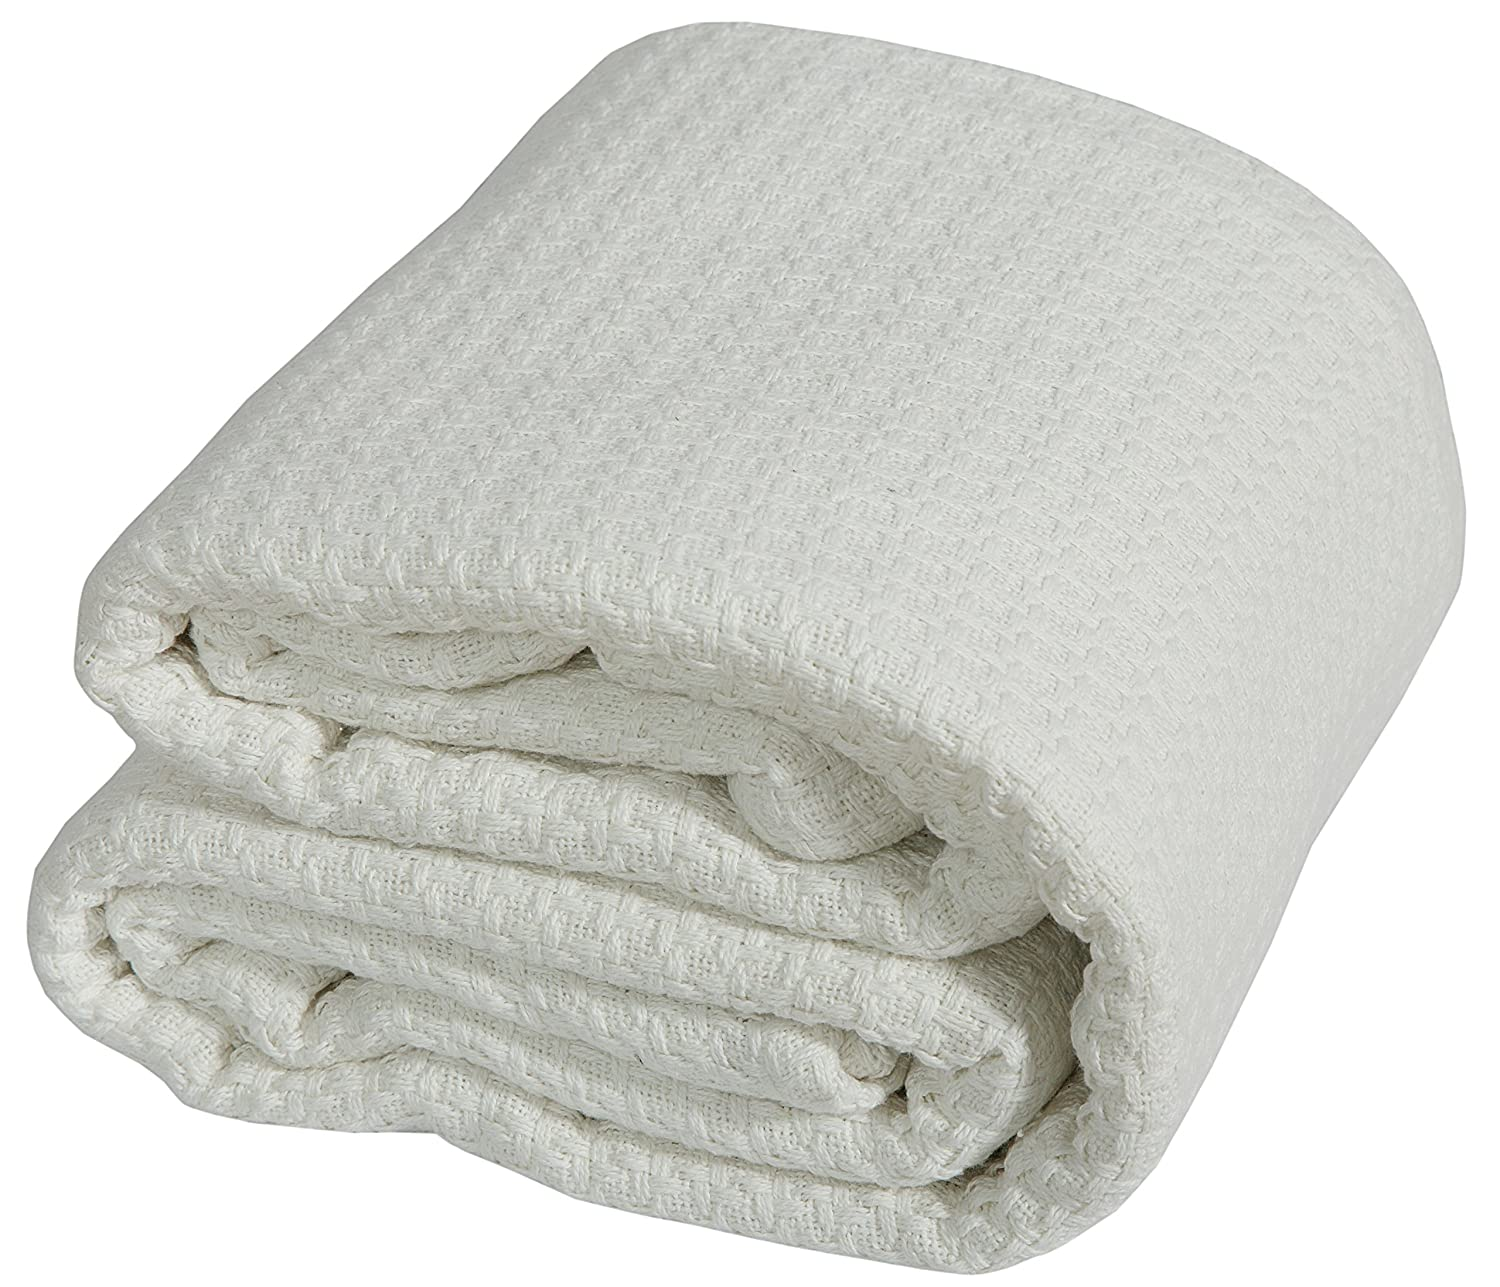 100% Soft Premium COMBED Cotton - Queen Ivory - Thermal Blanket - Snuggle in these Super Soft Cozy Cotton Blankets - Perfect for layering any Bed - Provides Comfort and Warmth by TEX TREND